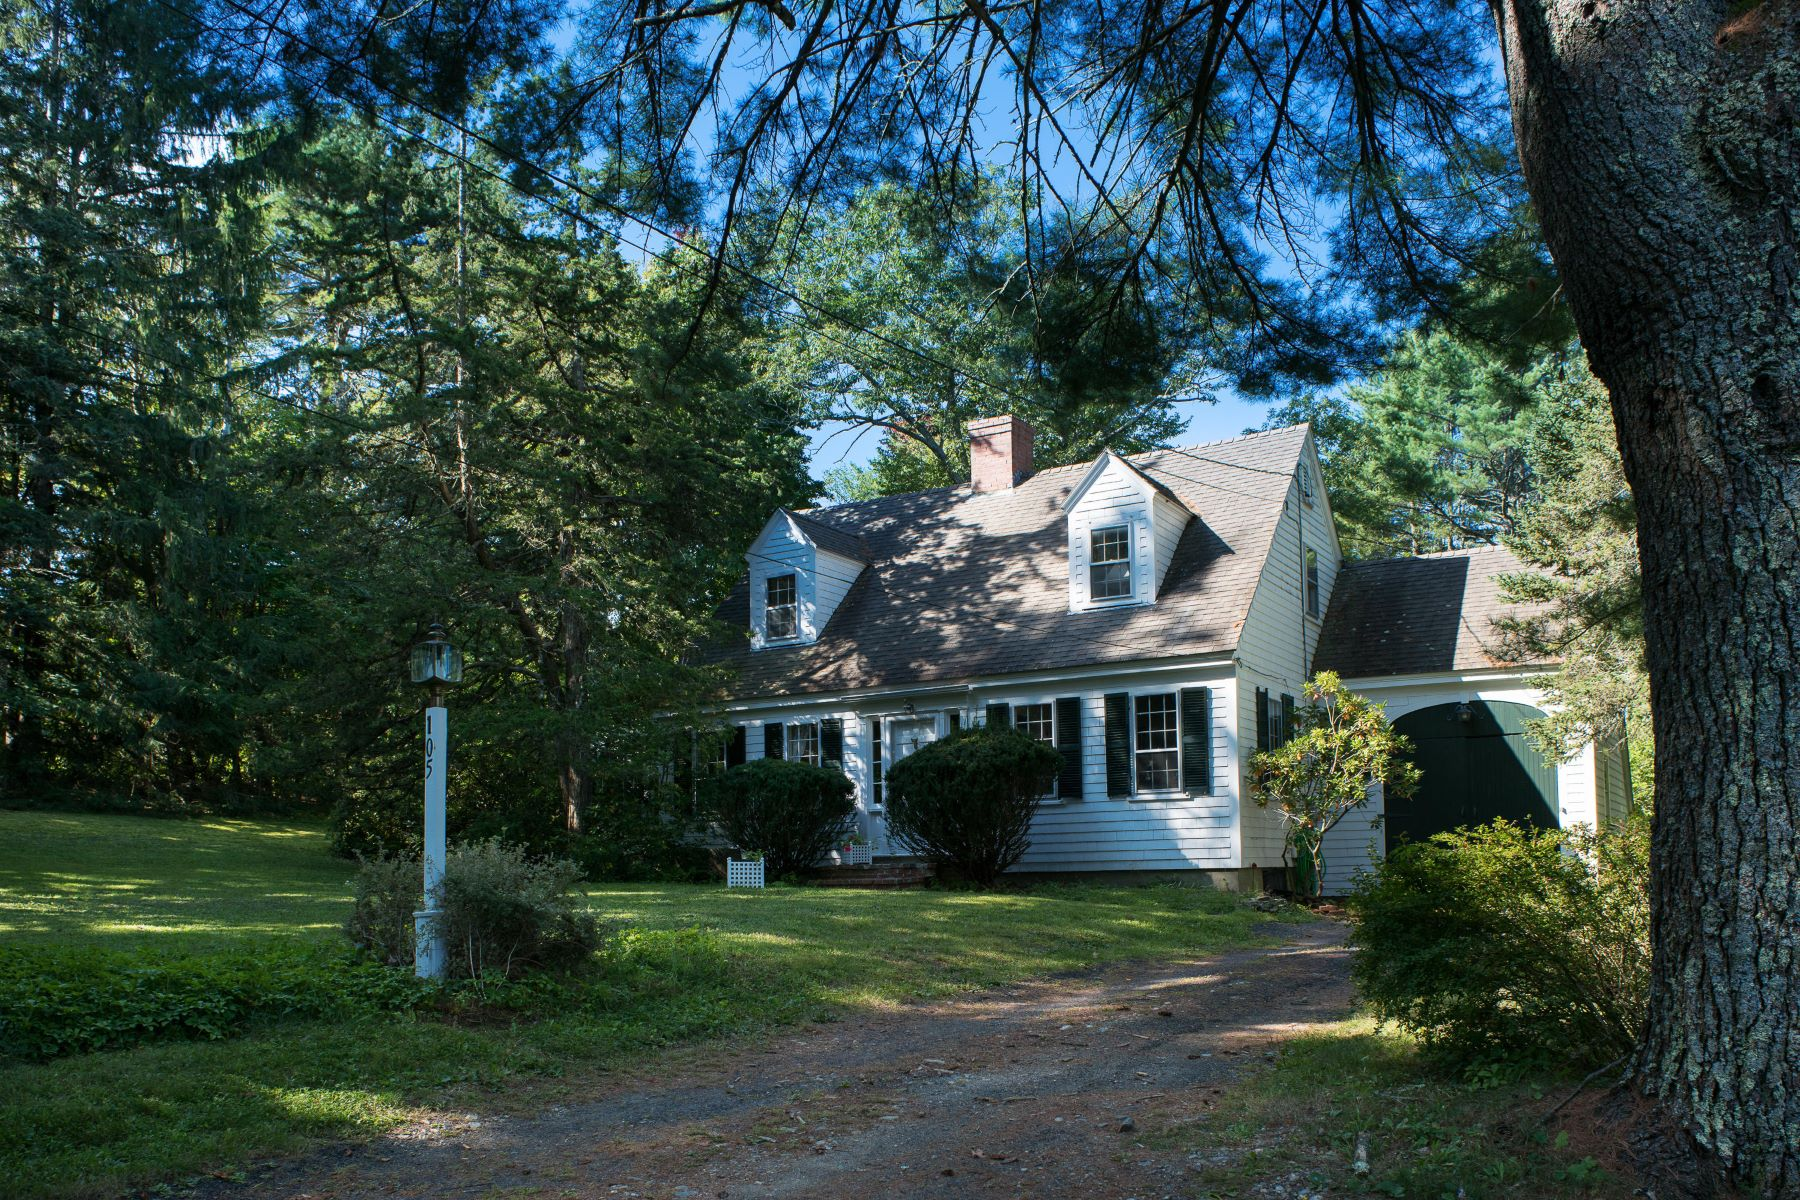 Single Family Homes for Active at 105 Bristol Road Damariscotta, Maine 04543 United States